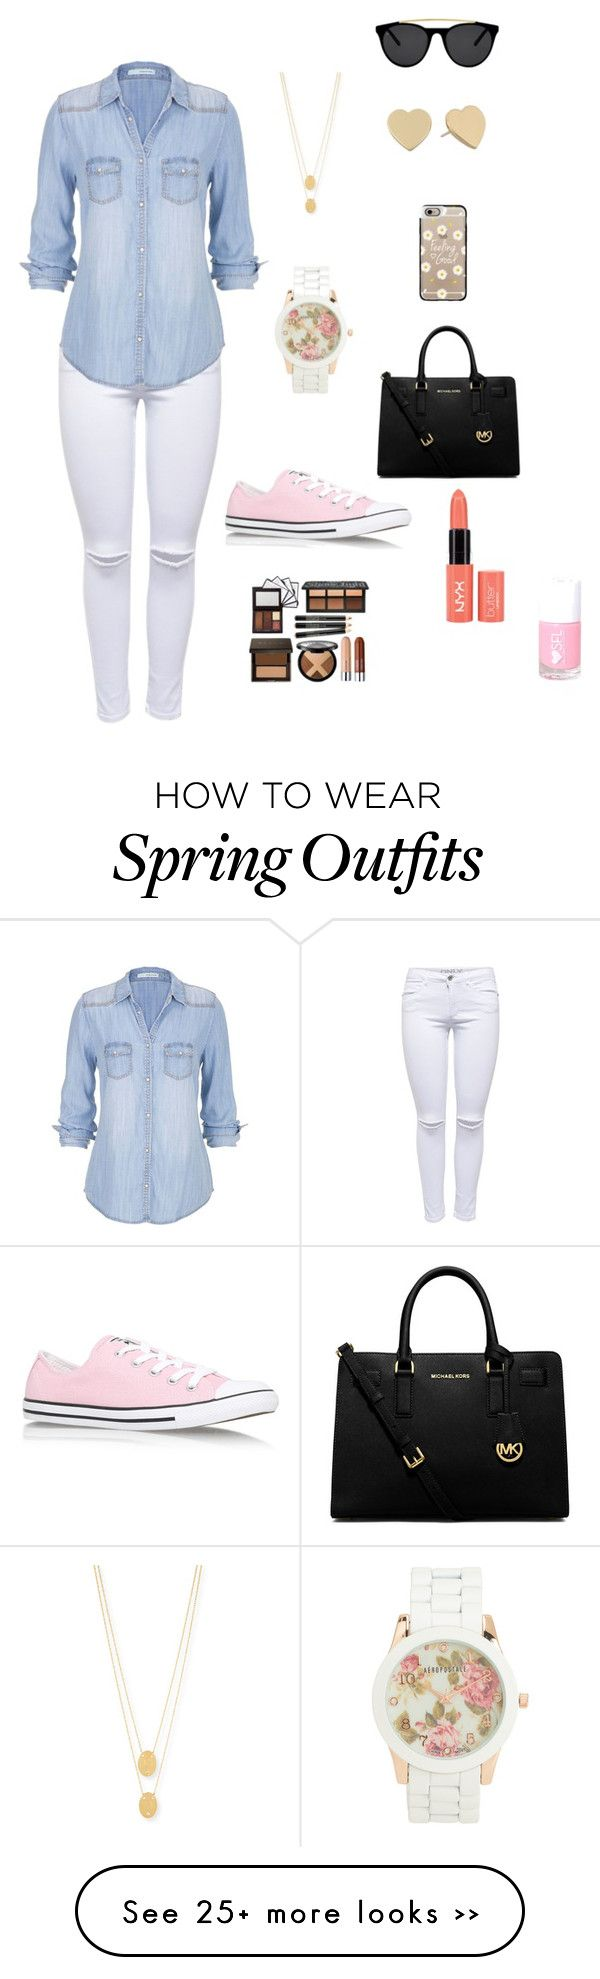 perfect shopping outfit by rita-moo on Polyvore featuring Lipsy, maurices, Smoke Mirrors, Casetify, Jennifer Zeuner, Kate Spade, Aéropostale, MICHAEL Michael Kors and Converse